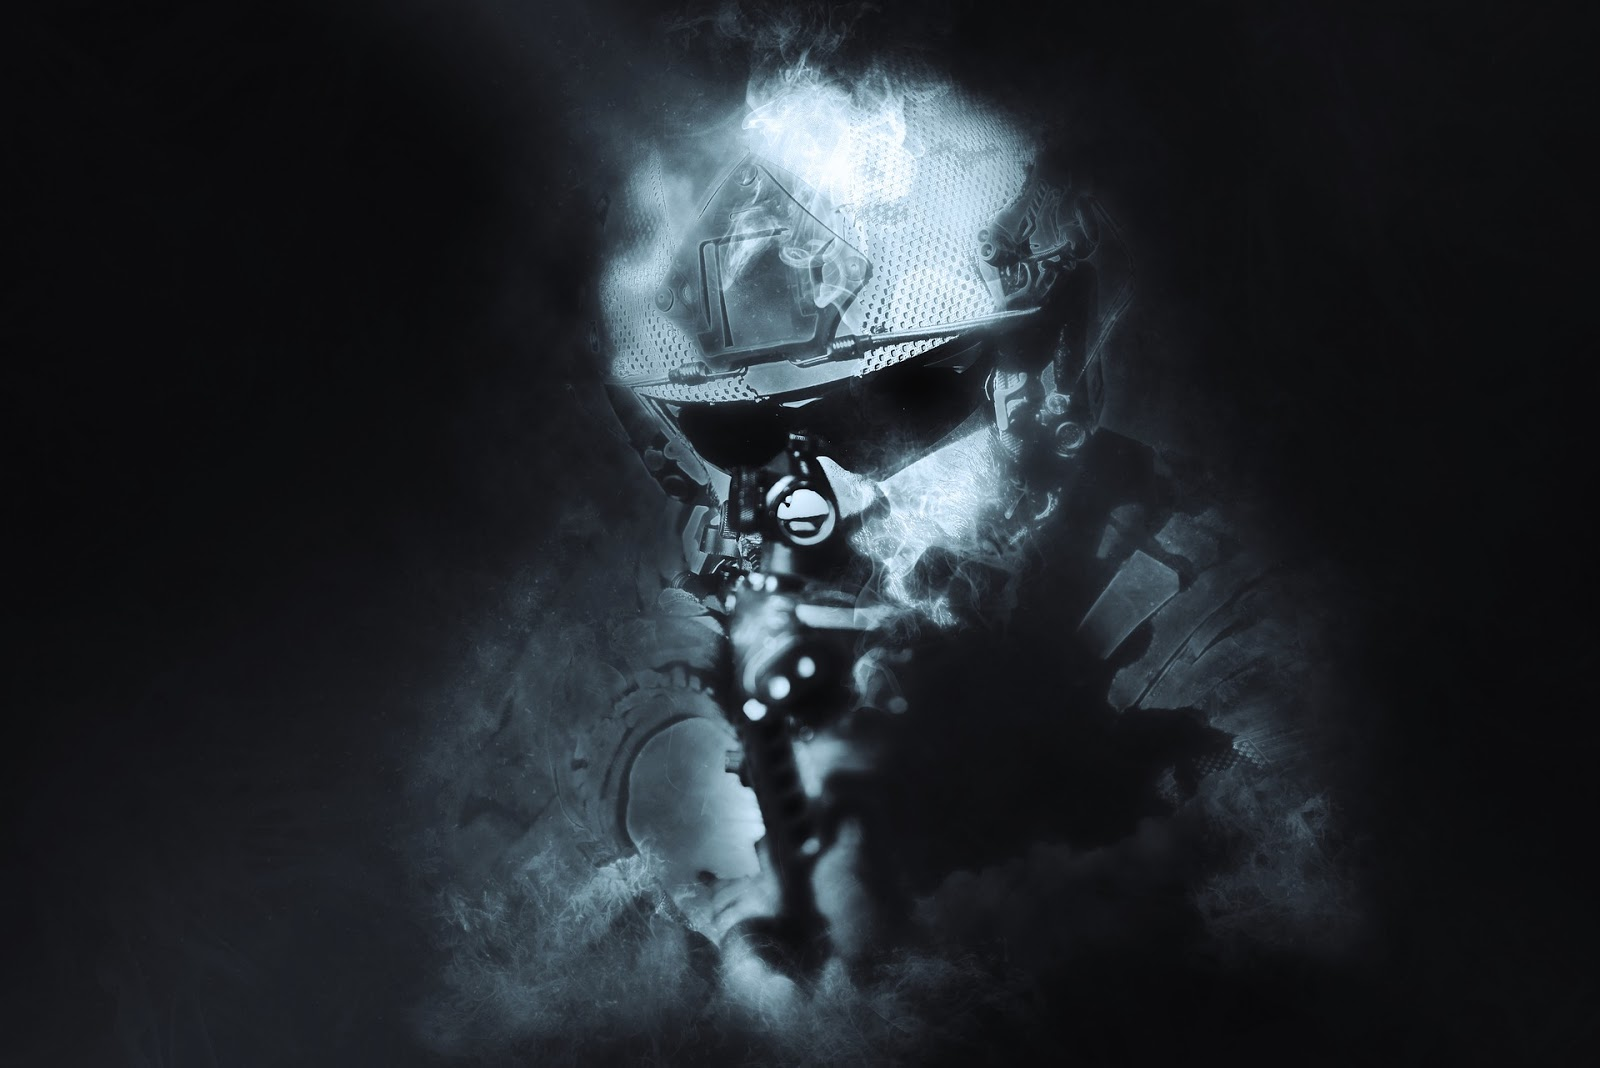 soldier facing camera and disappearing into blue smoke for blog post about movie rambo: last blood